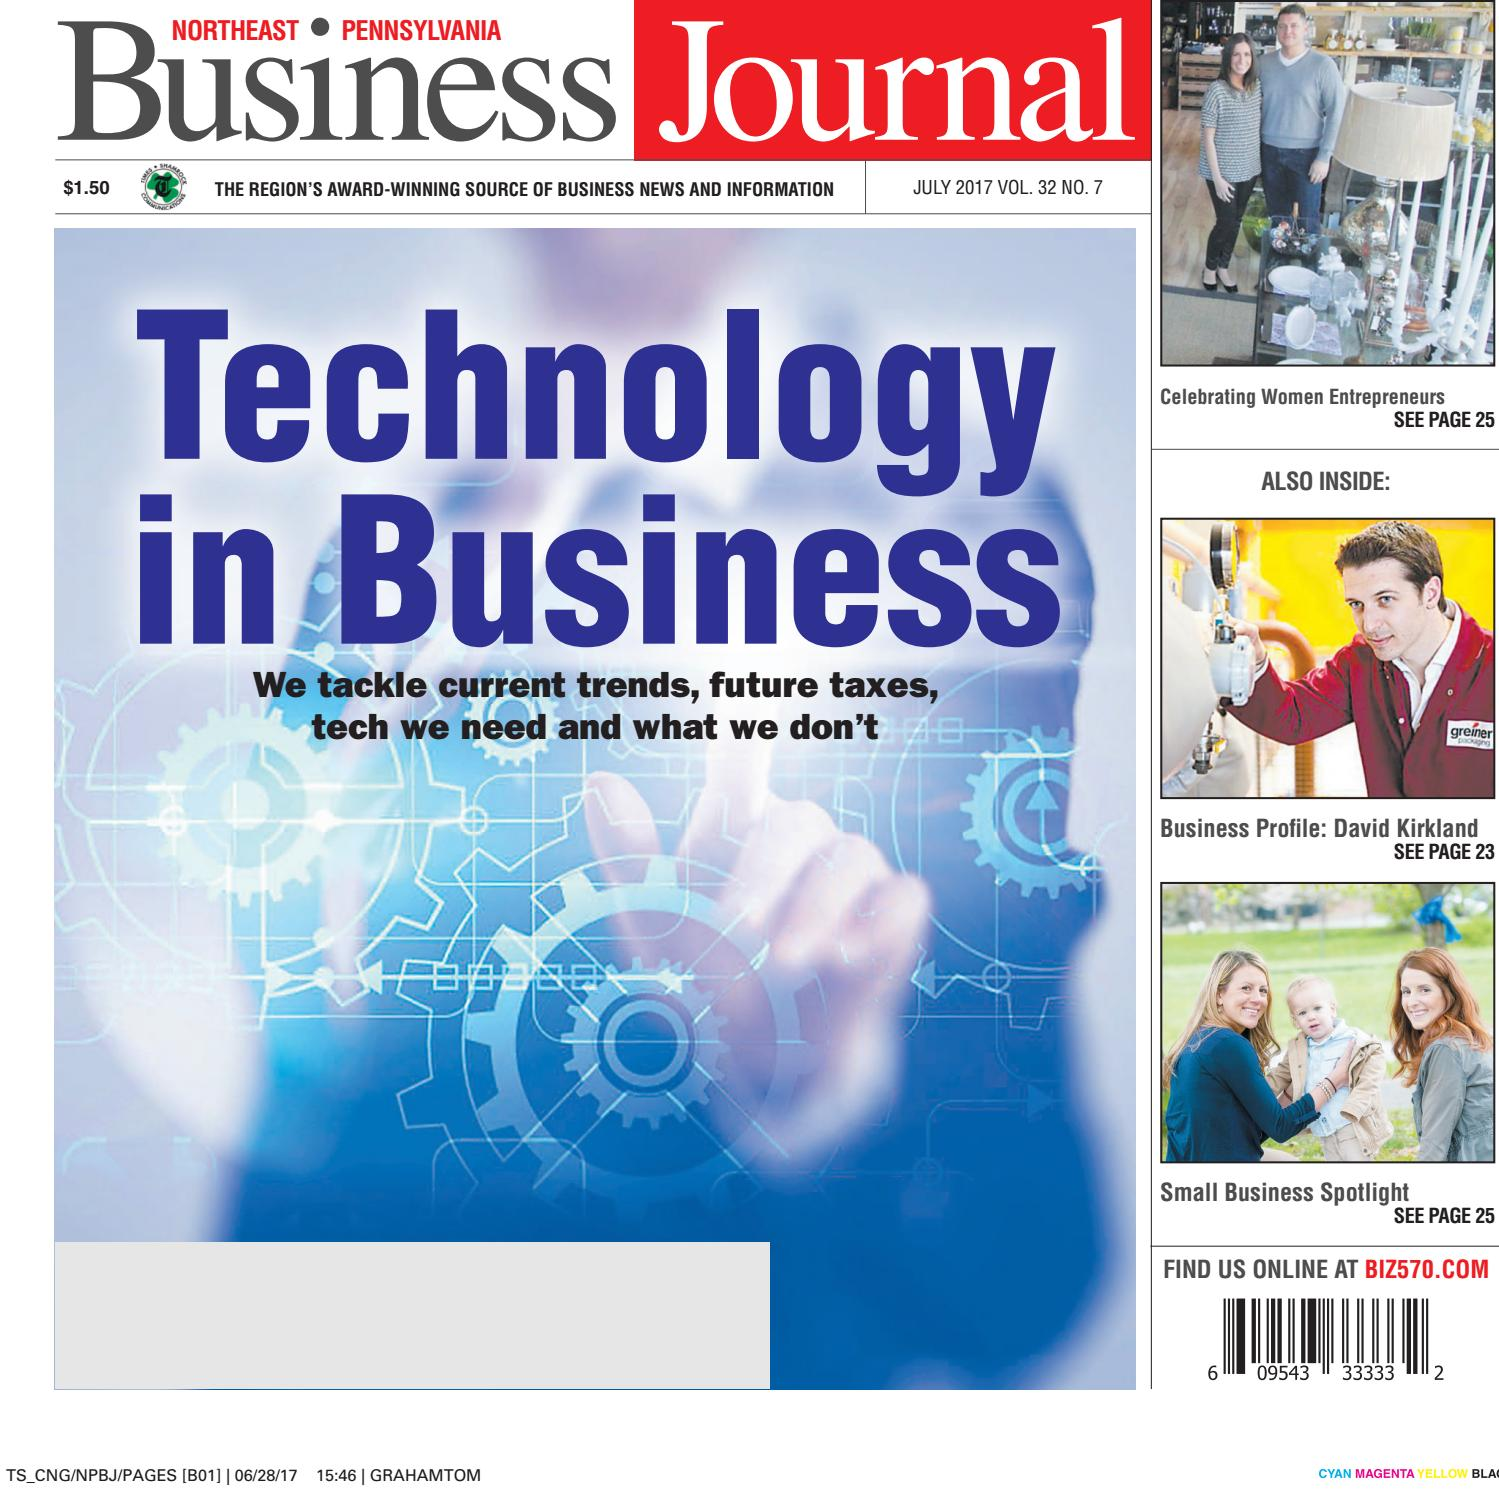 Northeast Pennsylvania Business Journal July 2017 By CNG Newspaper